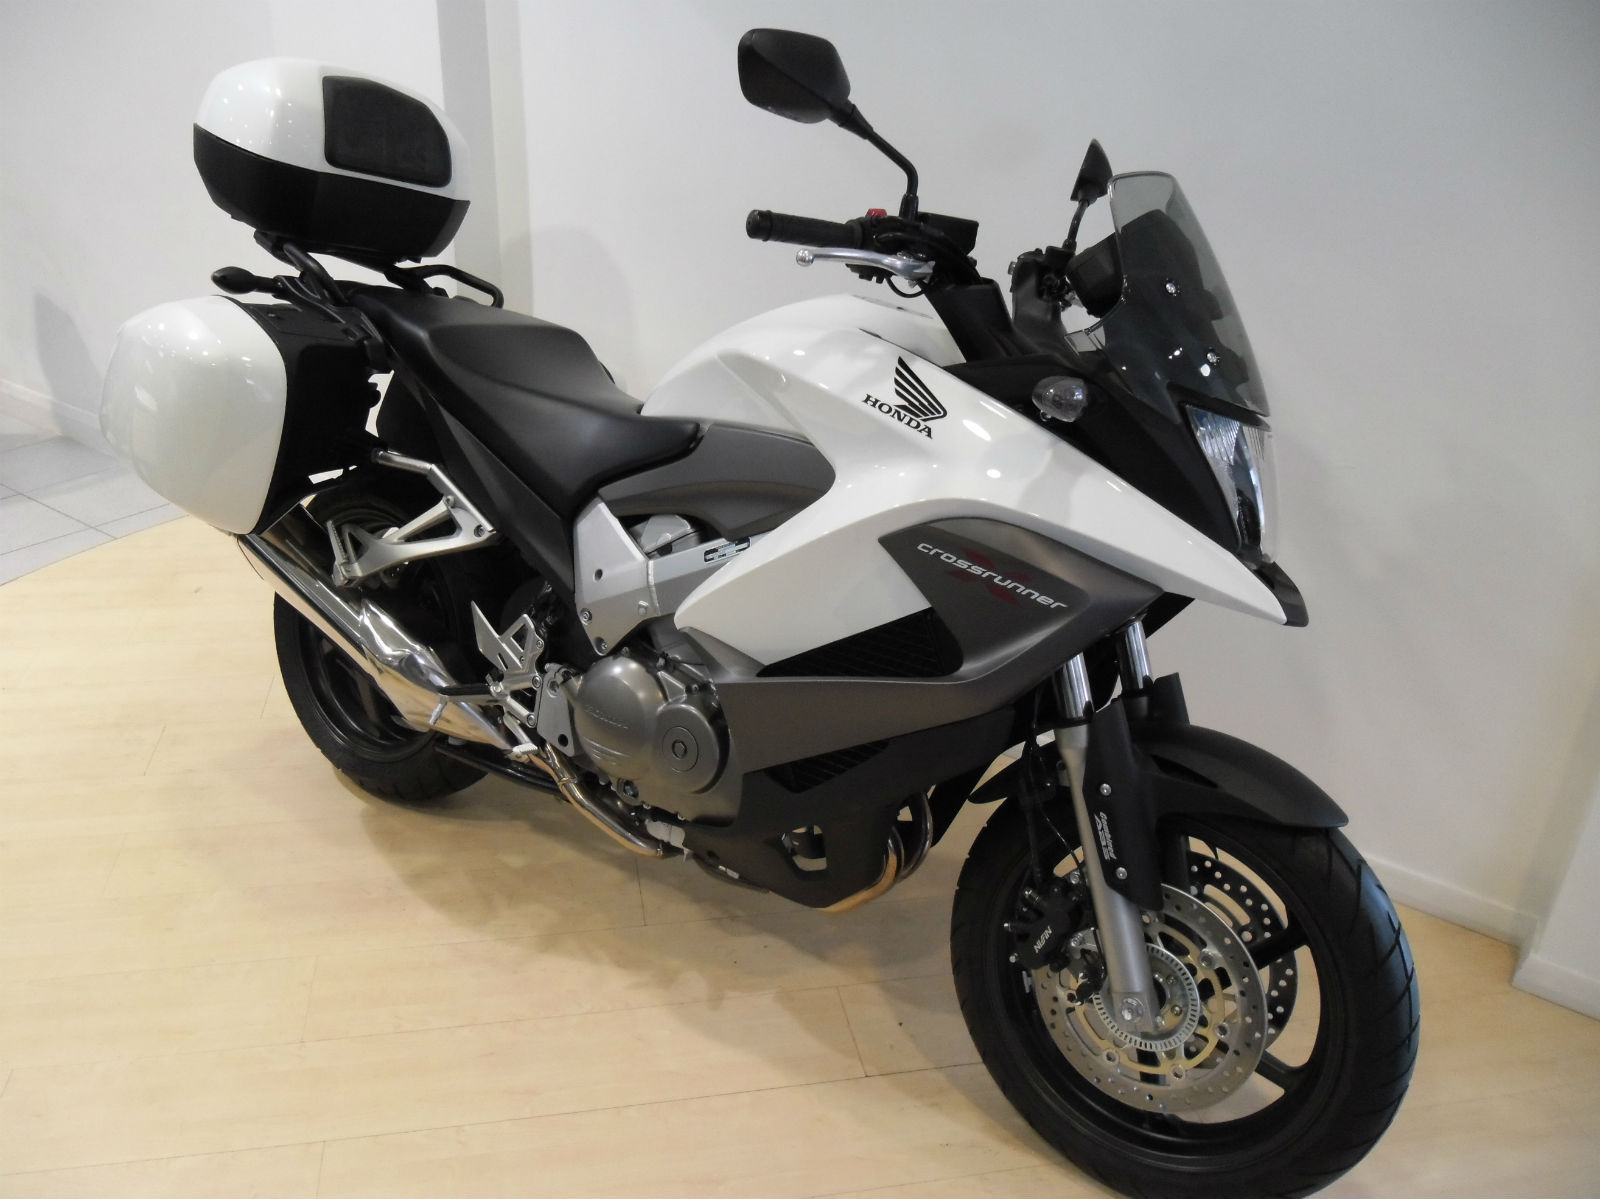 honda vfr 800 x crossrunner 800cc adventure motor. Black Bedroom Furniture Sets. Home Design Ideas